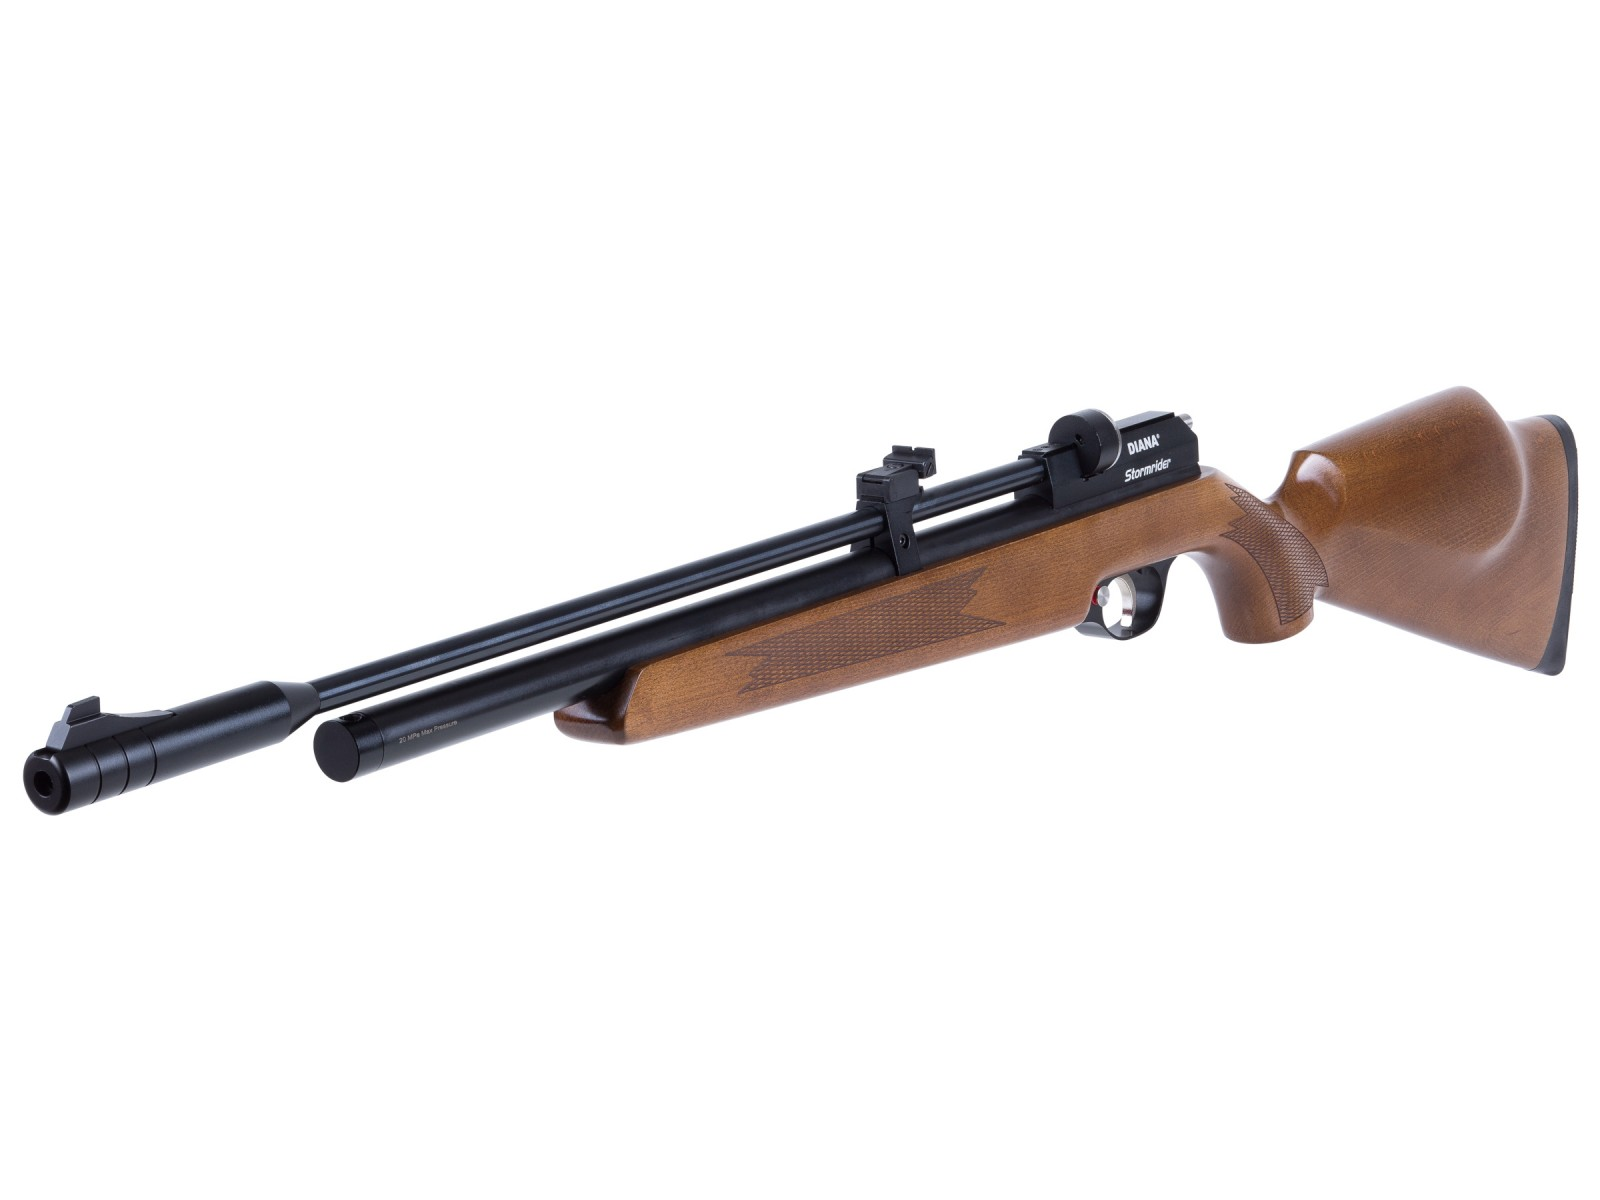 Questions & Answers: Diana Stormrider Multi-shot PCP Air Rifle